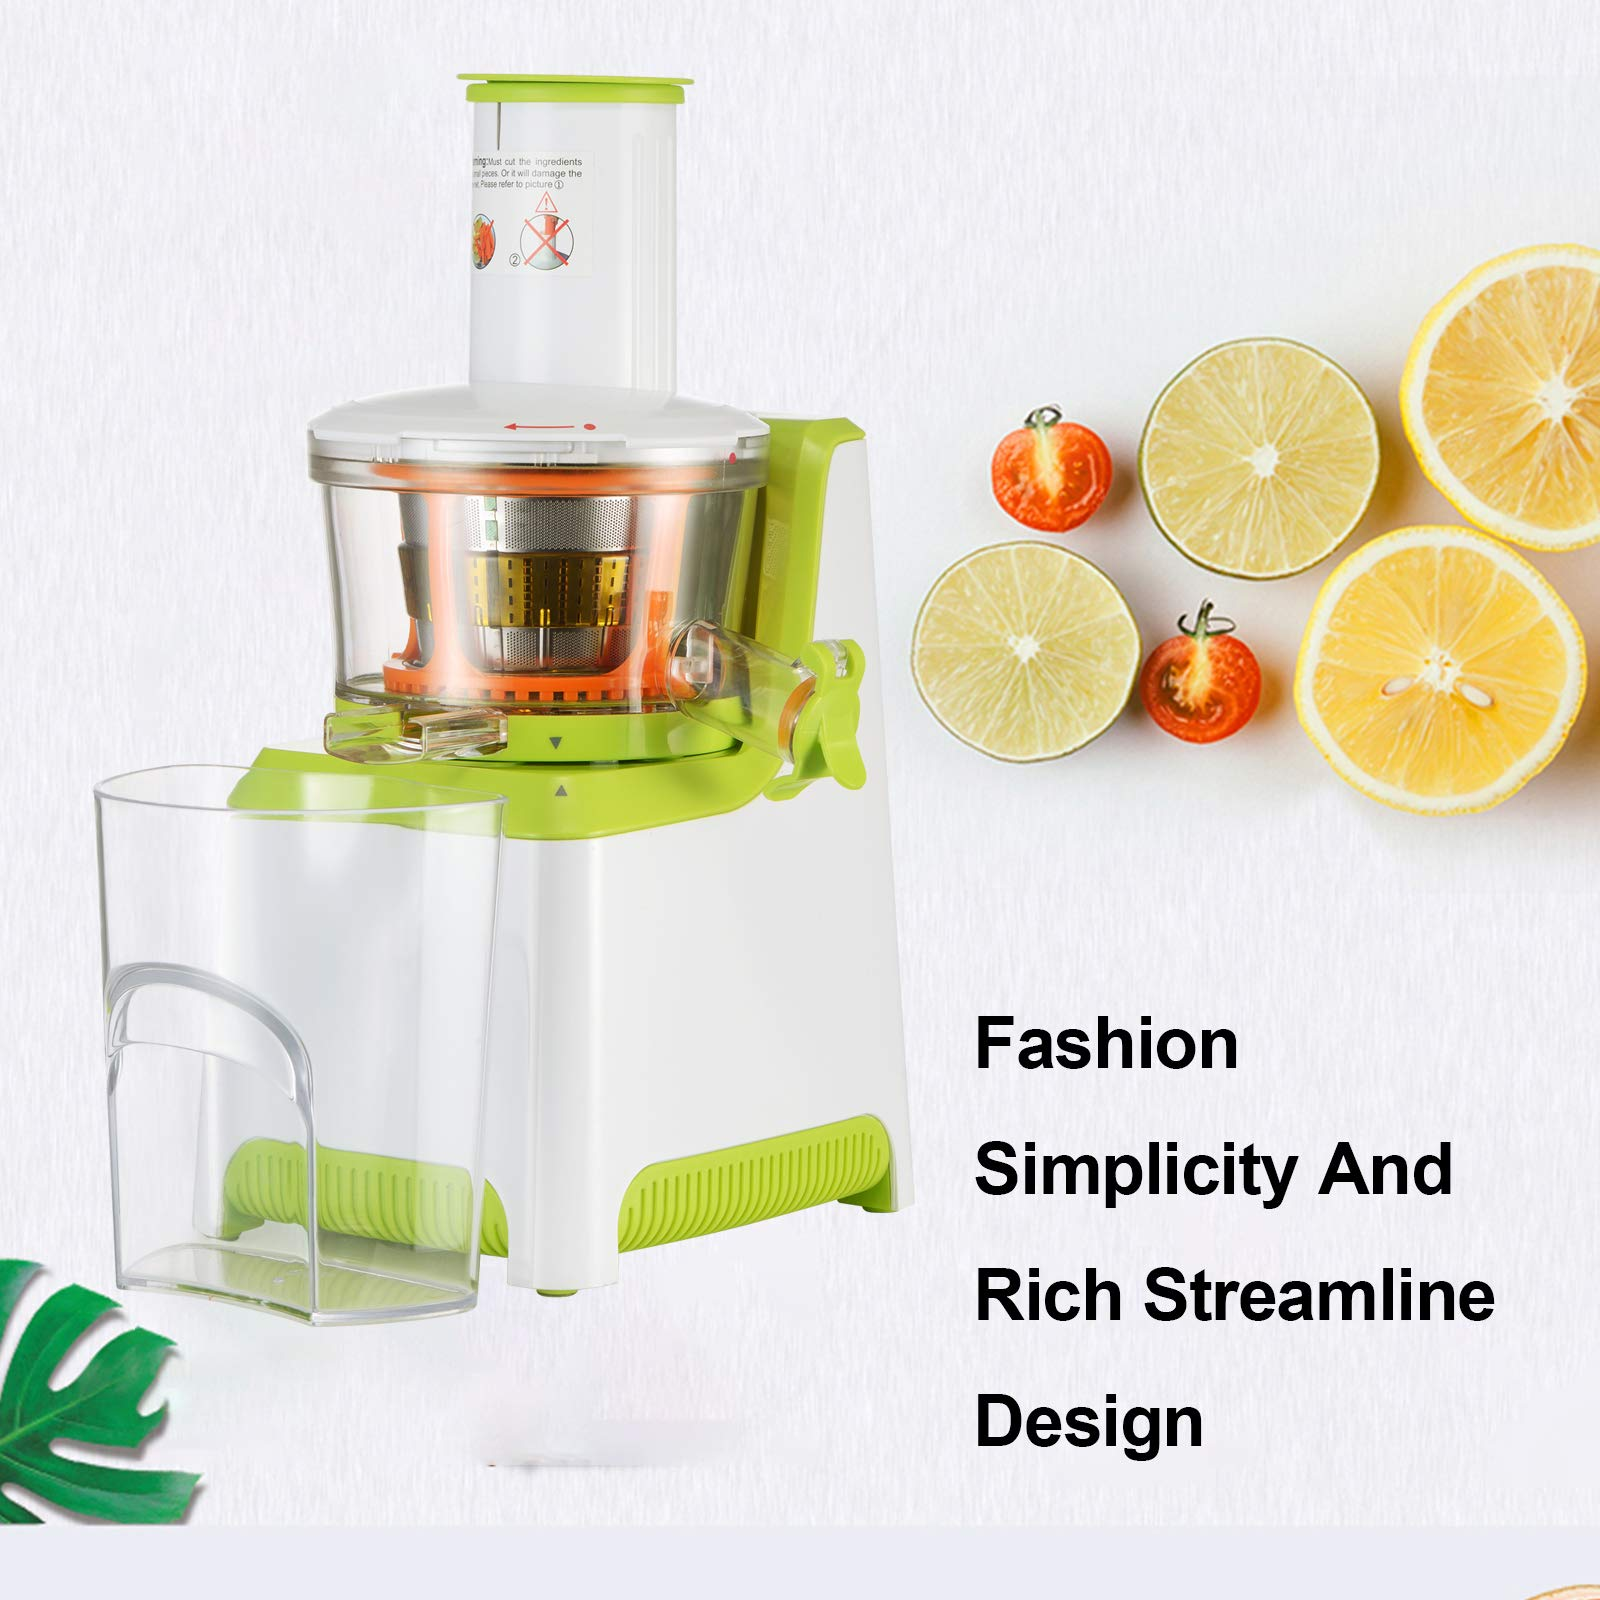 KUPPET Juicer, Slow Masticating Juicer, Higher Juicer Yield, Cold Press Juicer Machine with Quiet Motor & Reverse Function, High Nutrient Fruit & Vegetable Juice, Easy to Clean (Green&White) by KUPPET (Image #4)